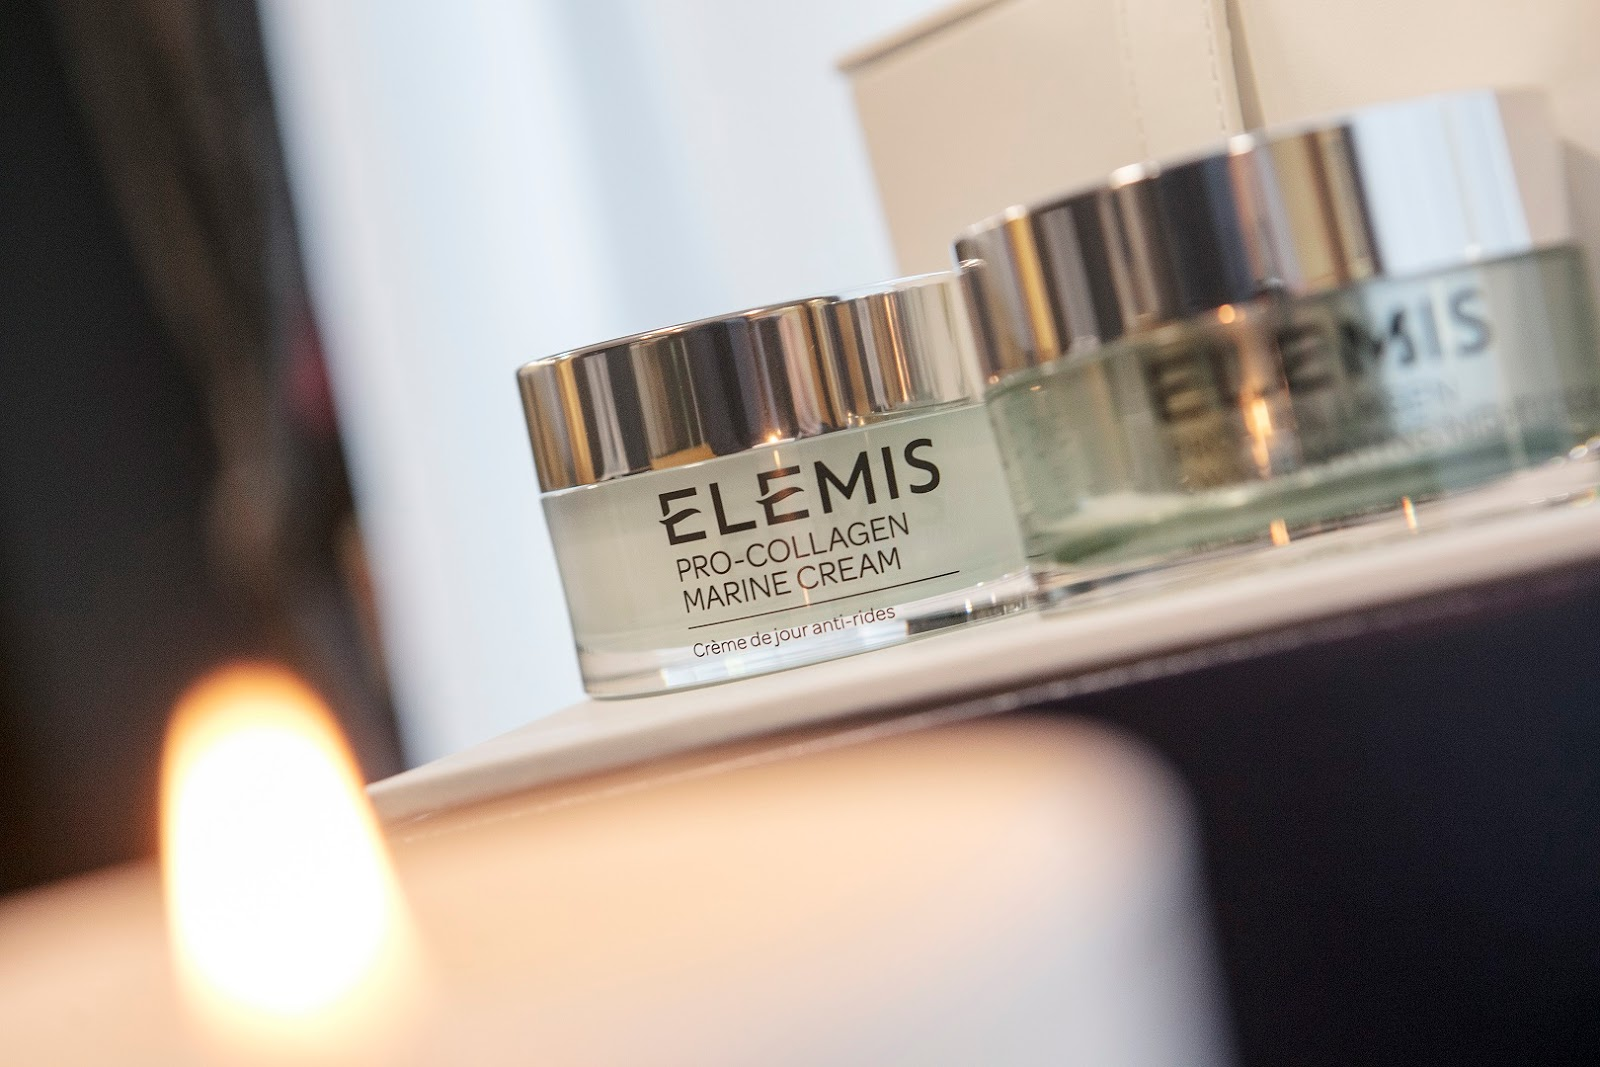 Elemis Pro Collagen Marine Cream at Matfen Hall Spa